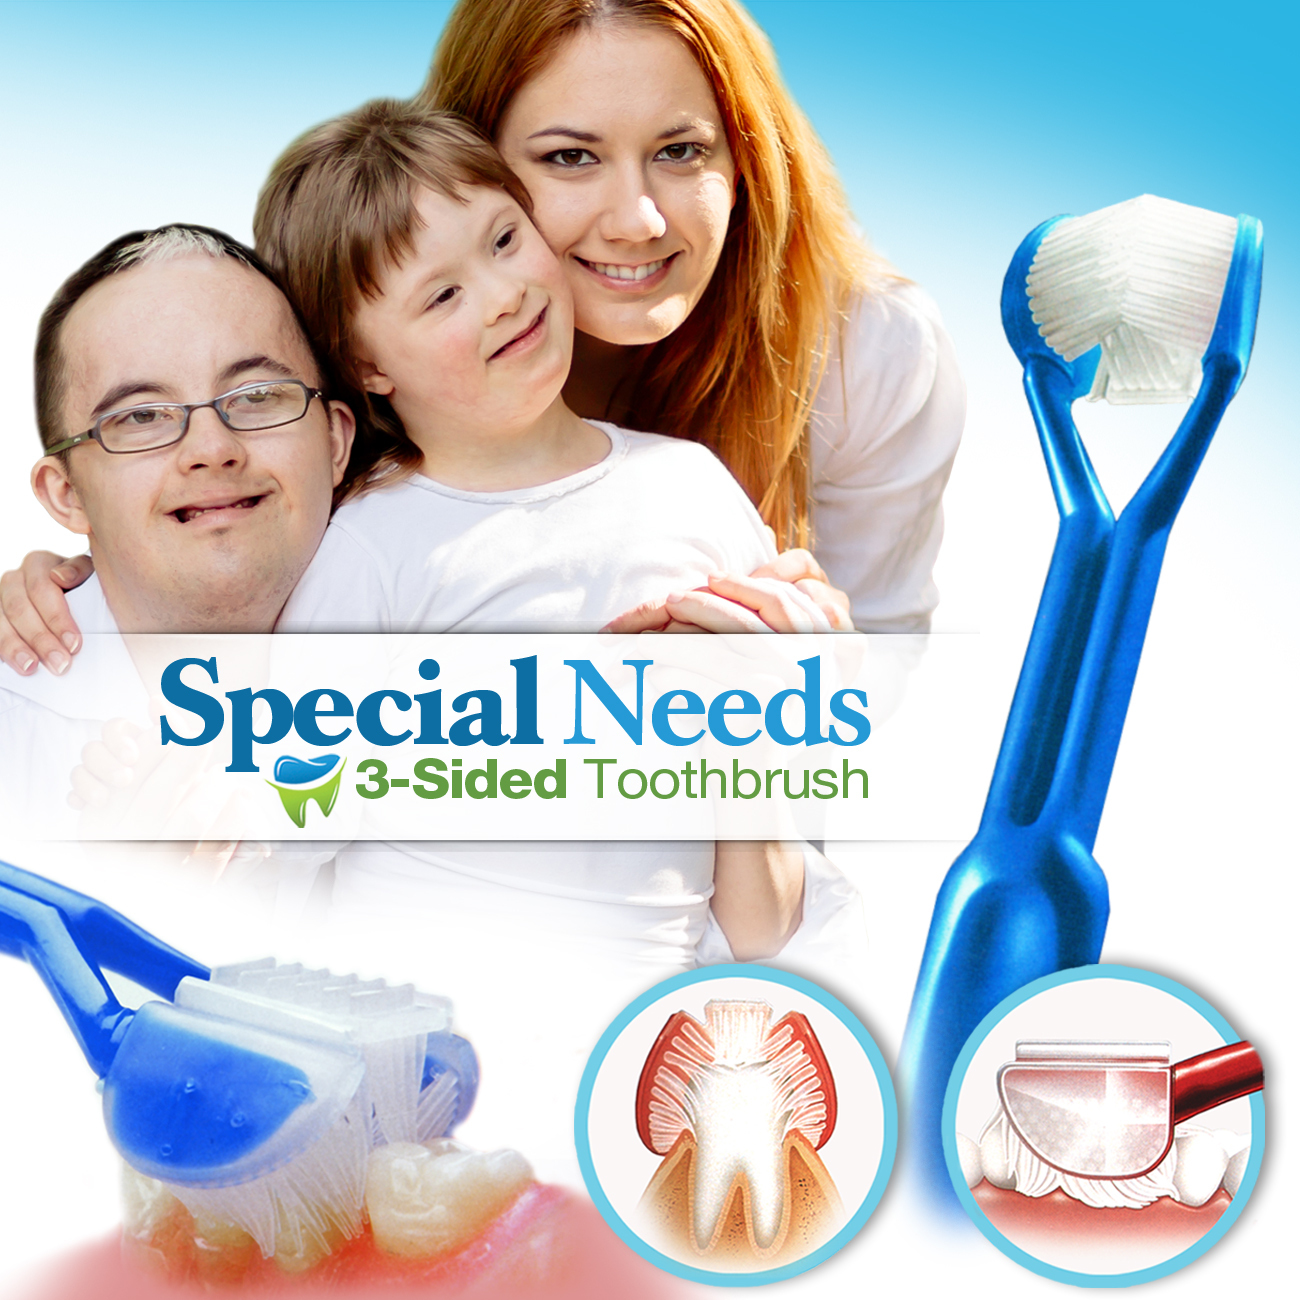 DenTrust SPECIAL NEEDS 3-Sided Toothbrush :: Wrap-Around Design for Complete Cleaning :: Fast, Easy & More Effective :: Caregiver's Assisted Brushing SNT0001-EW